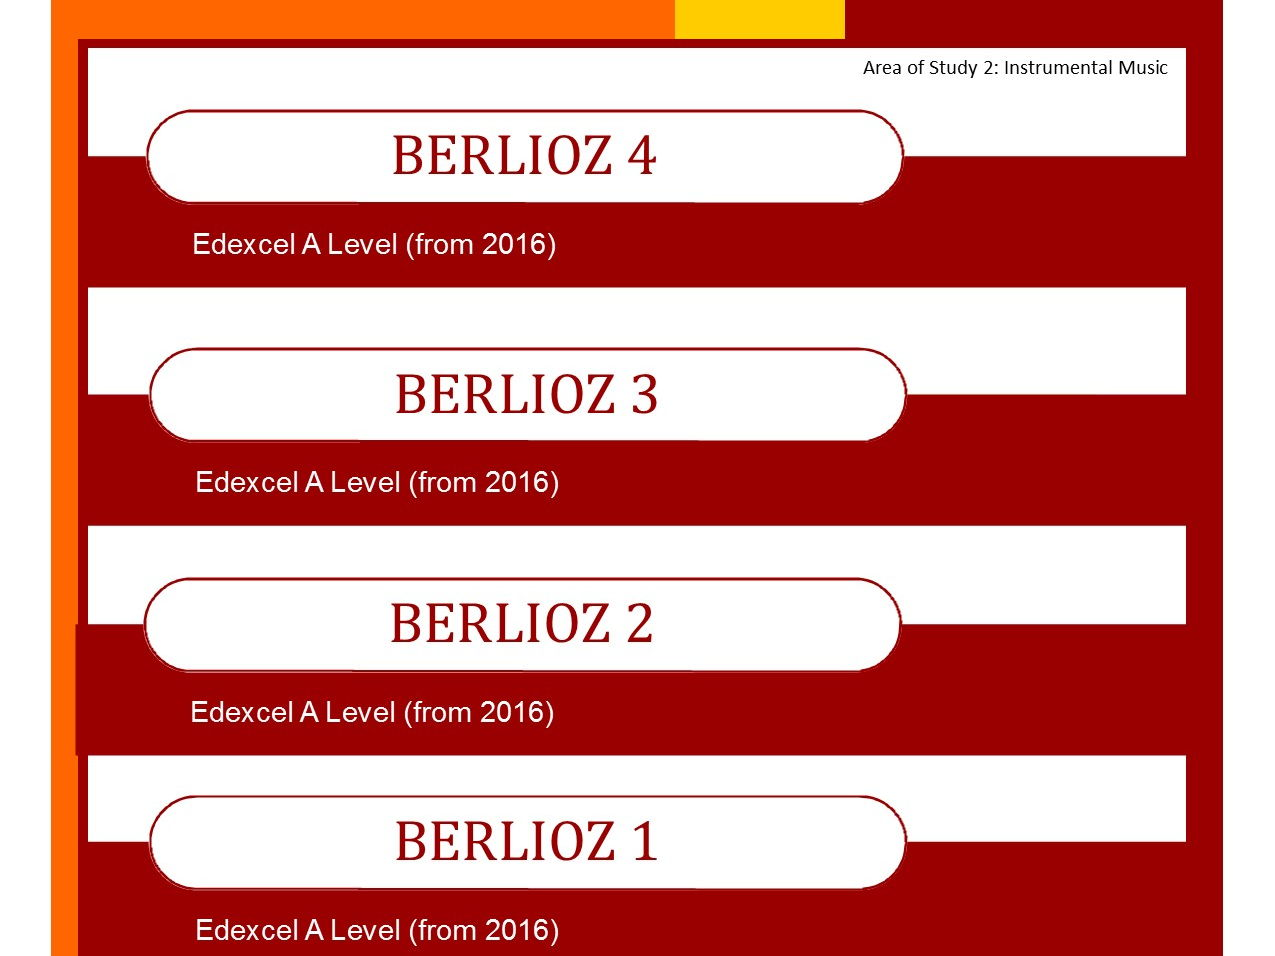 Edexcel Music A Level Big Berlioz Bundle